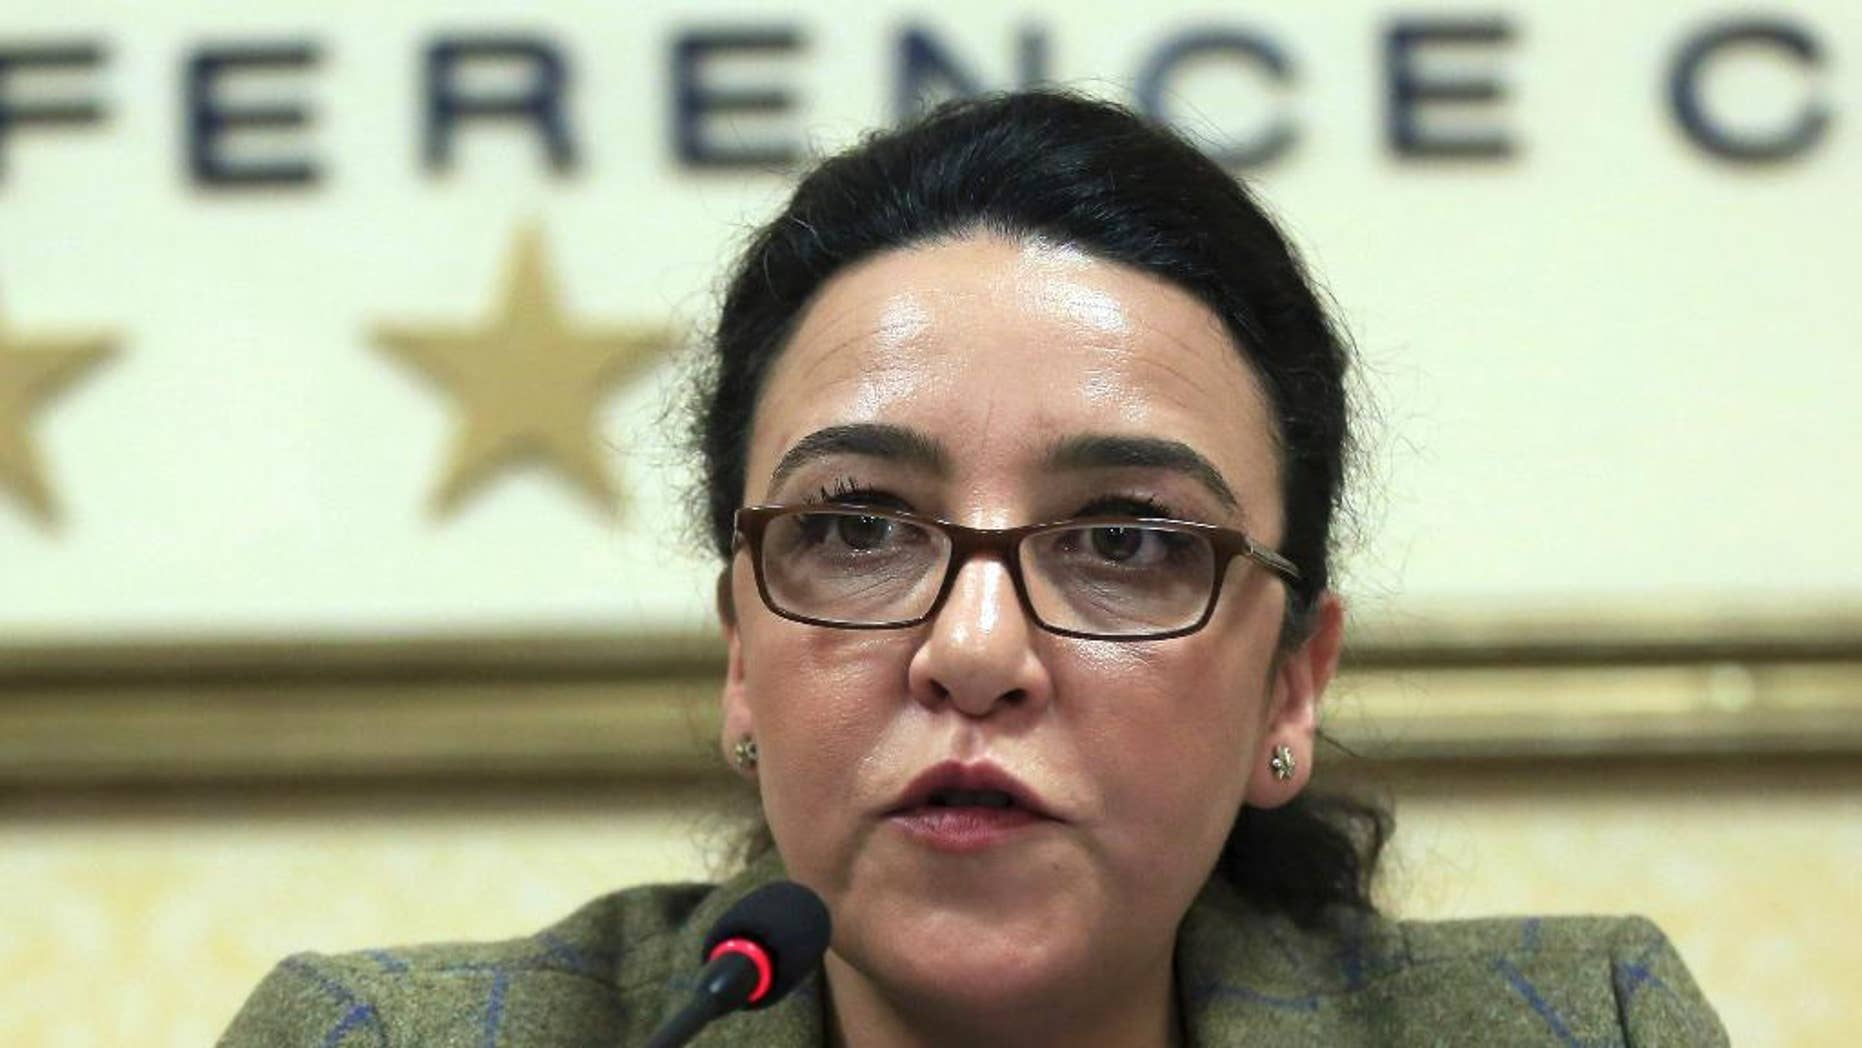 Houria Es-Slami, head of the United Nations Working Group of the Enforced or Involuntary Disappearances, speaks during a news conference in Tirana, Monday, Dec. 12, 2016. U.N. human rights officials have called on Albanian authorities to provide more reparations to families of around 6,000 people who disappeared during the former communist regime. (AP Photo Hektor Pustina)